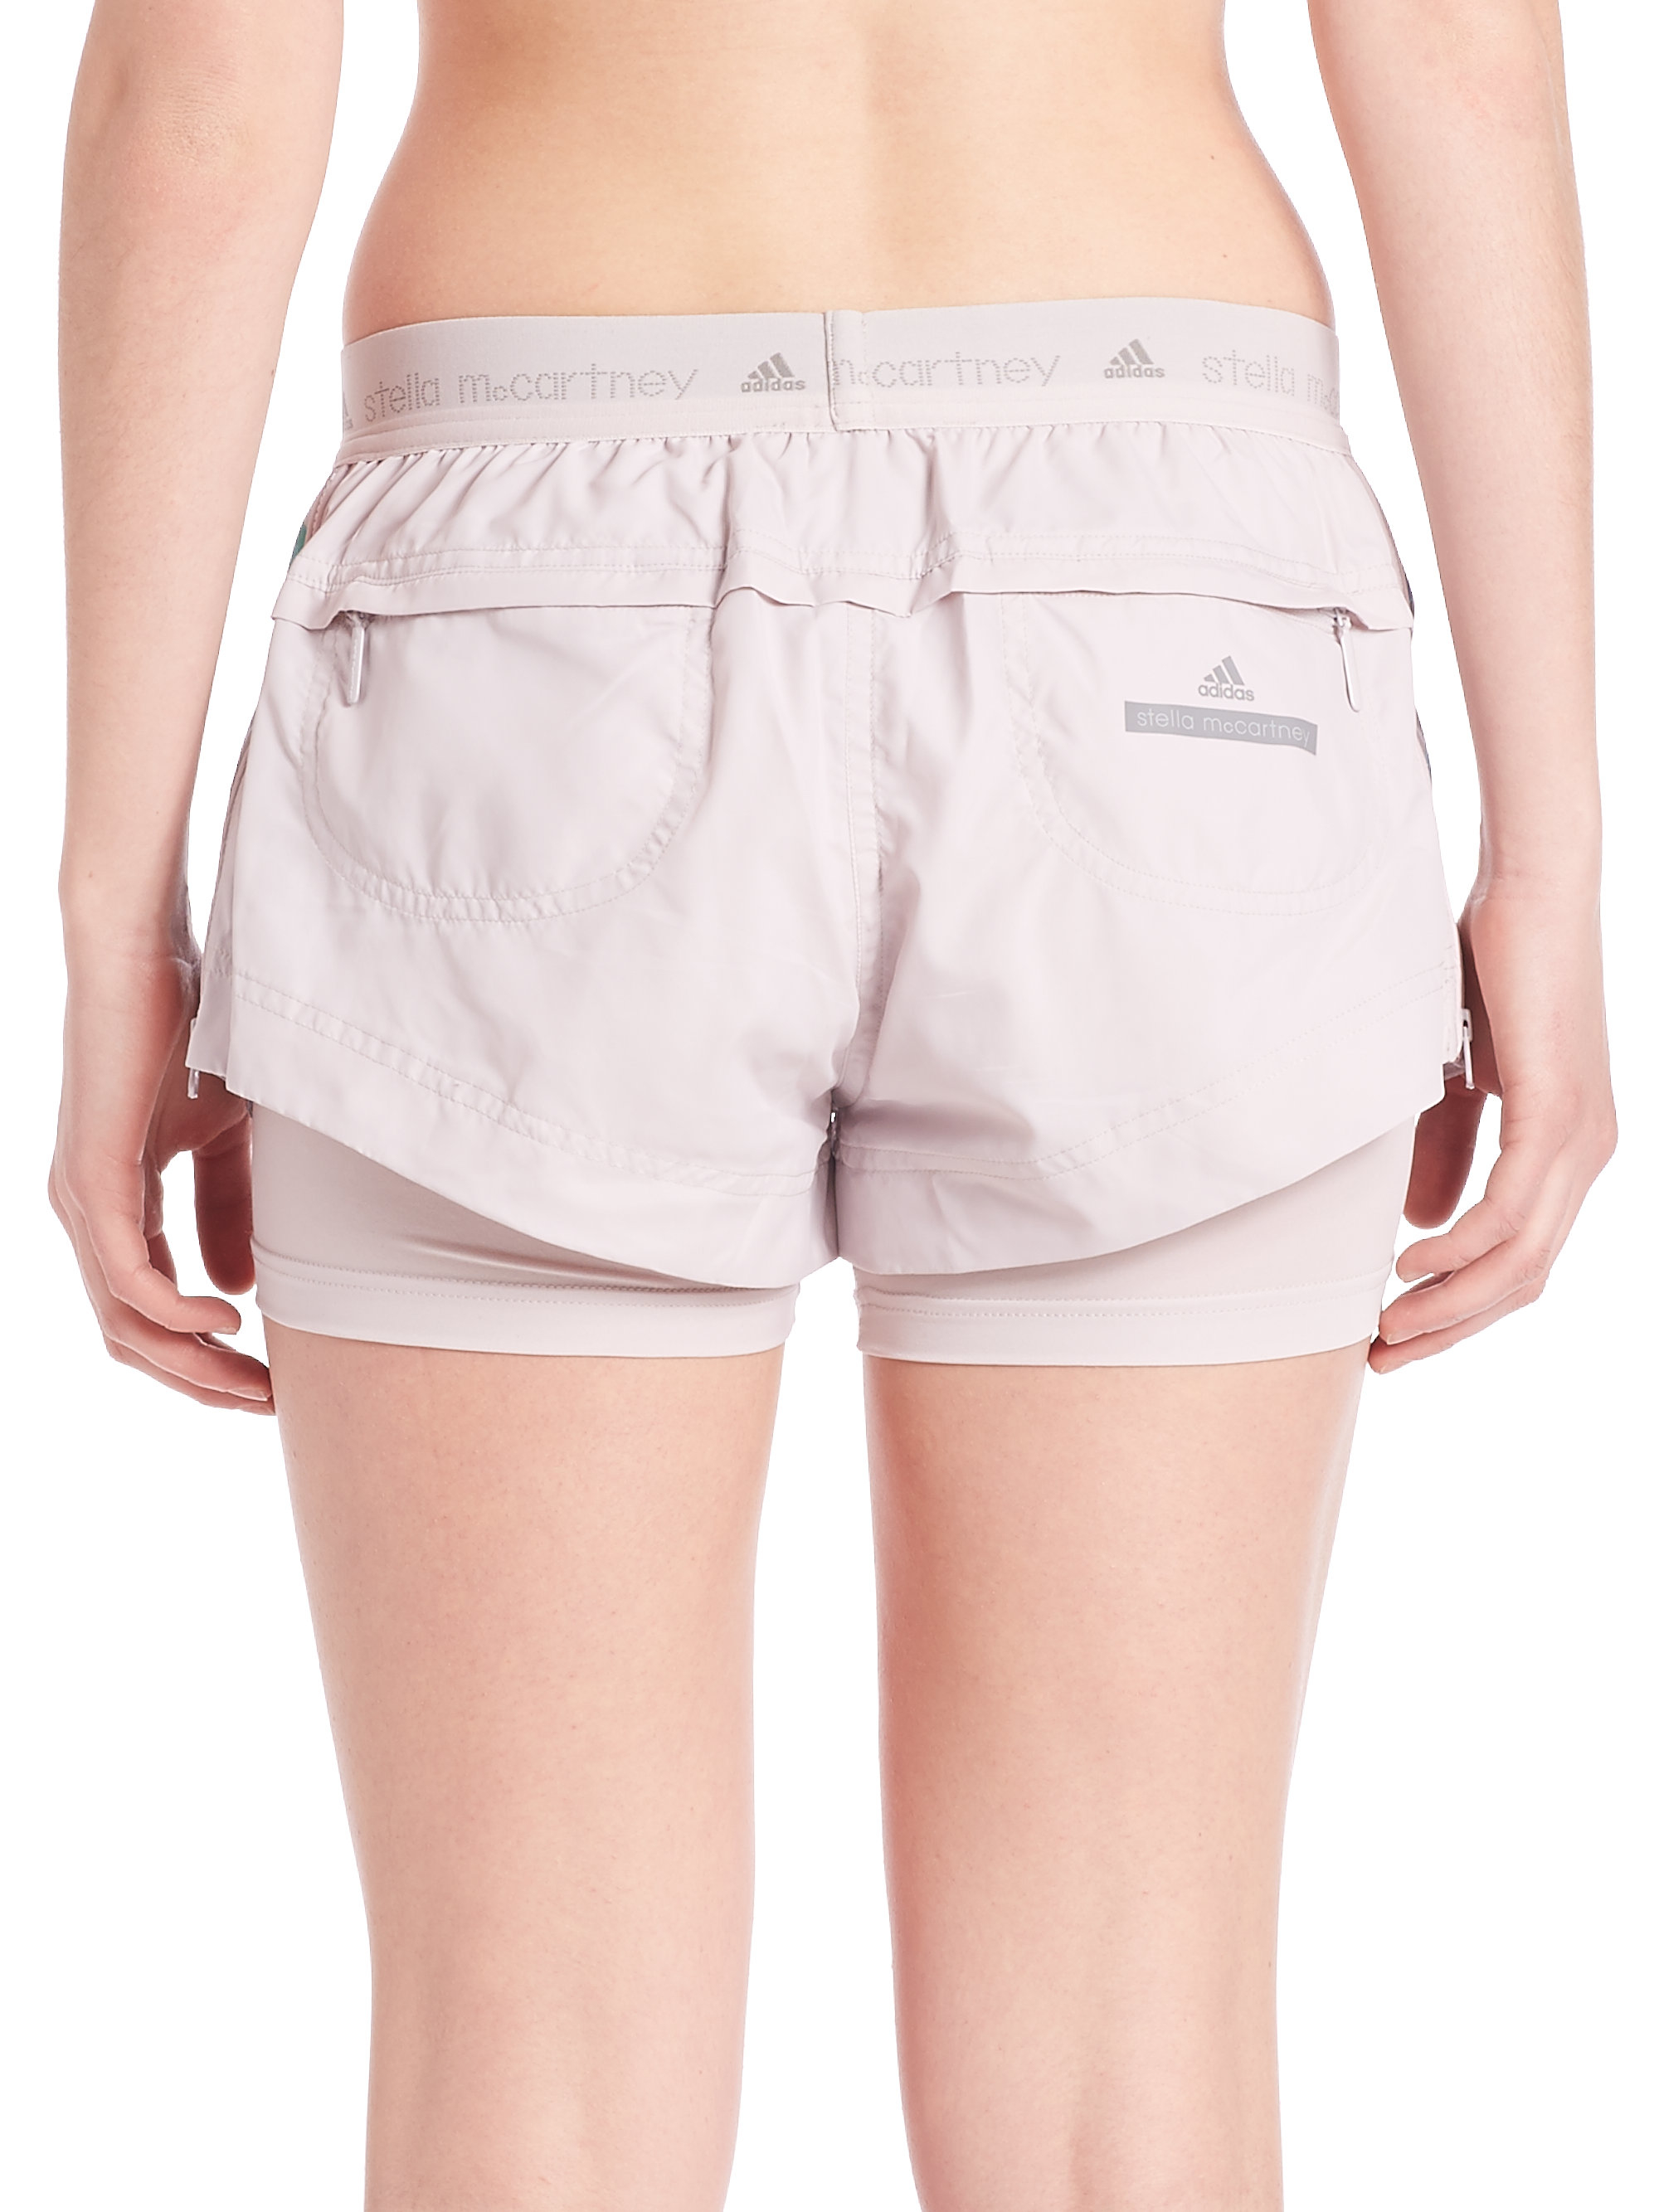 Adidas by Stella McCartney Run Blossom Lyst Shorts